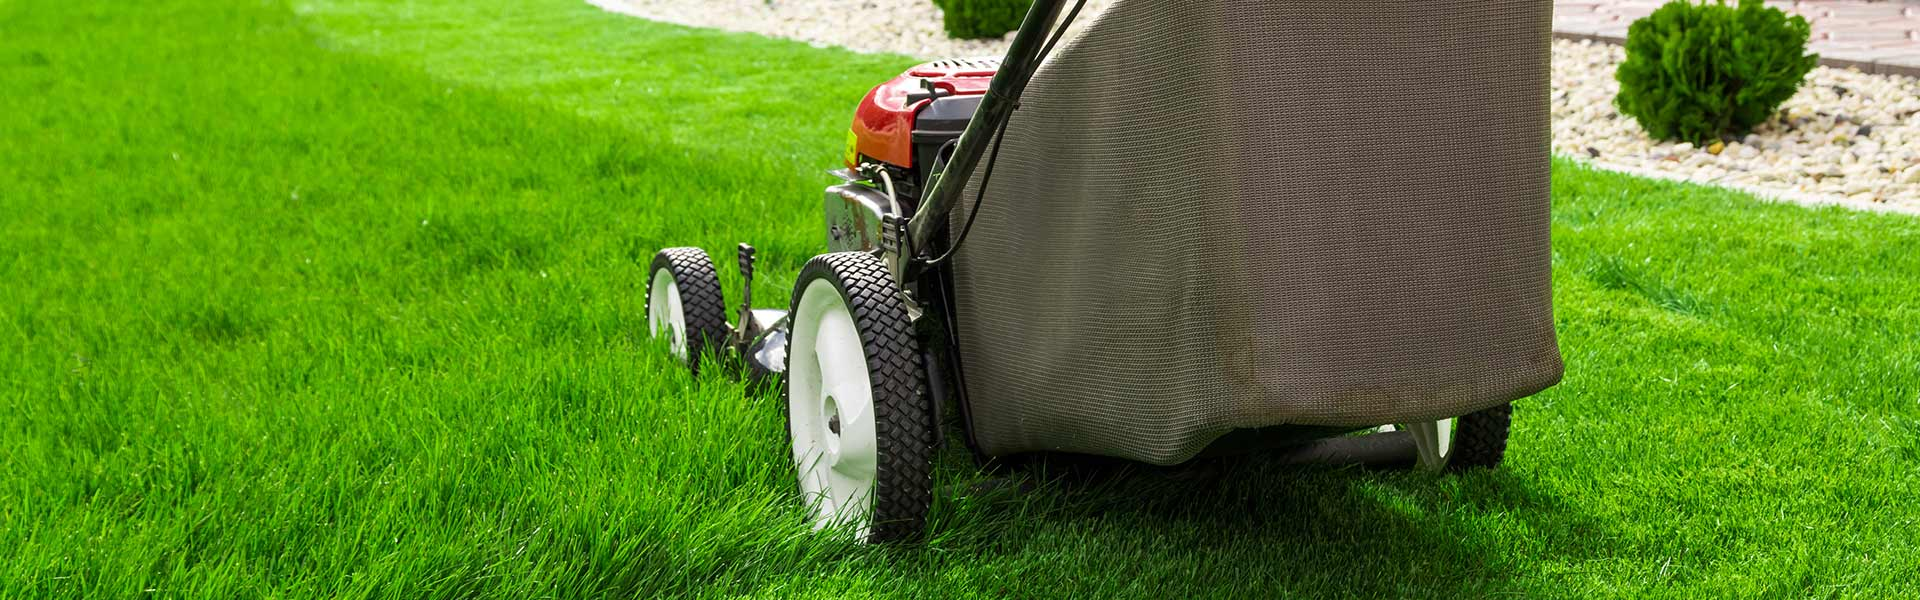 Web design and marketing for lawn maintenance companies.